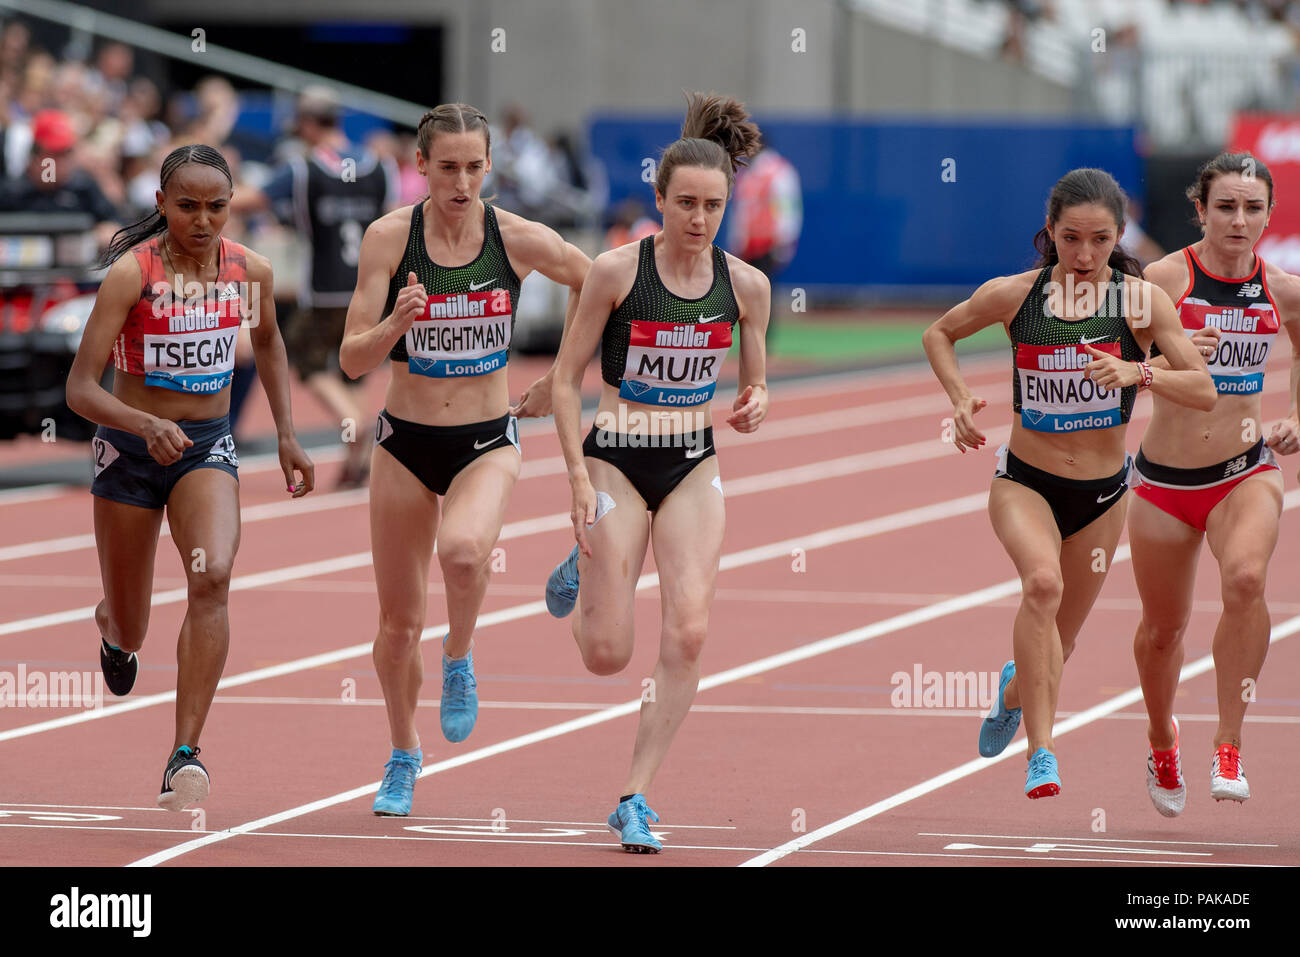 London, UK. 22nd July 2018. A general view of the start of the Millicent Fawcett Mile at the Muller Anniversary Games at the London Stadium, London, Great Britain, on 22 July 2018. Credit: Andrew Peat/Alamy Live News - Stock Image